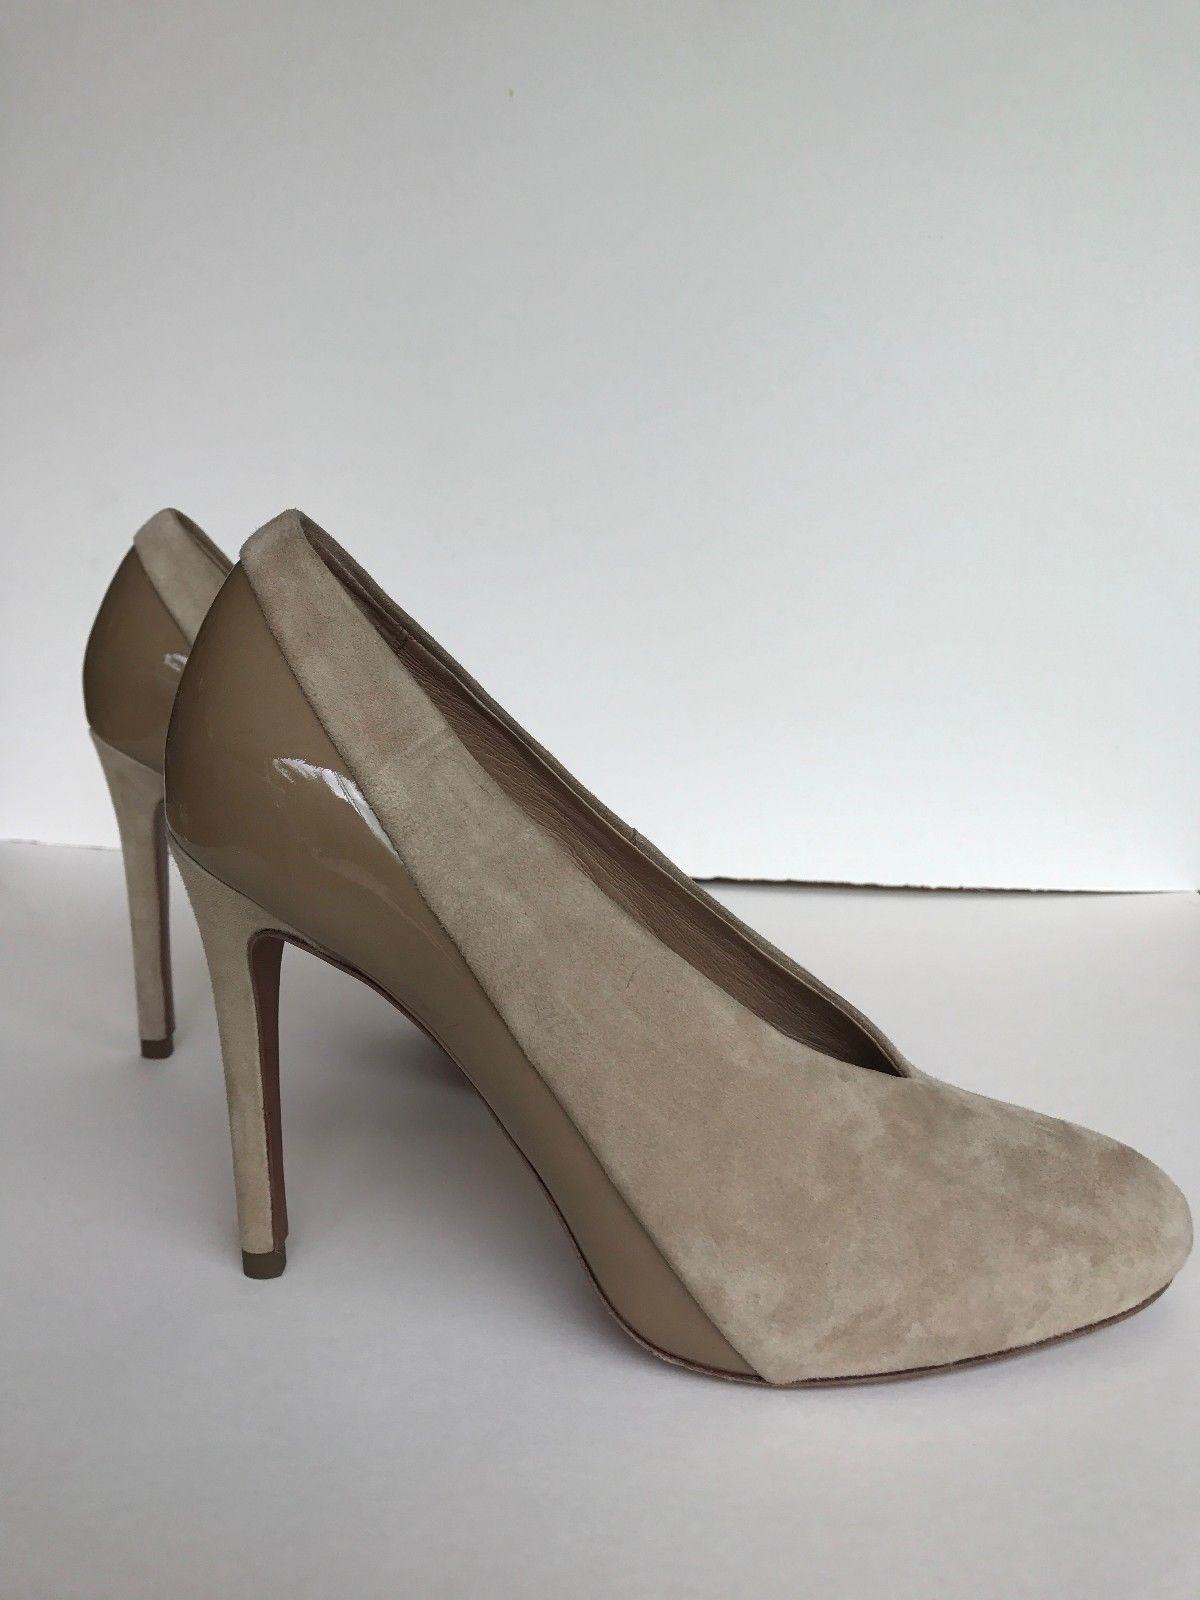 137a26355a28 See by Chloe Nude Suede Heels Size 39 Hardly Worn